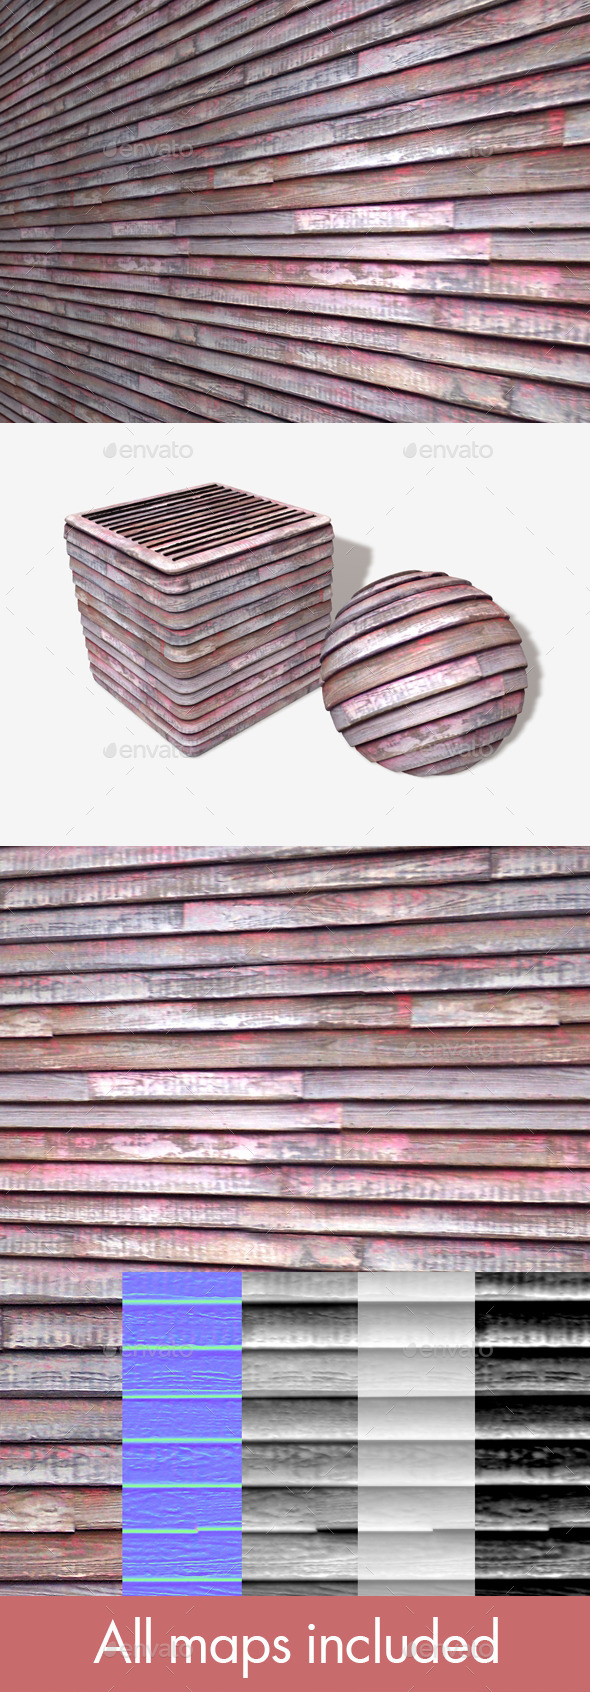 Weathered Painted Wood Seamless Texture